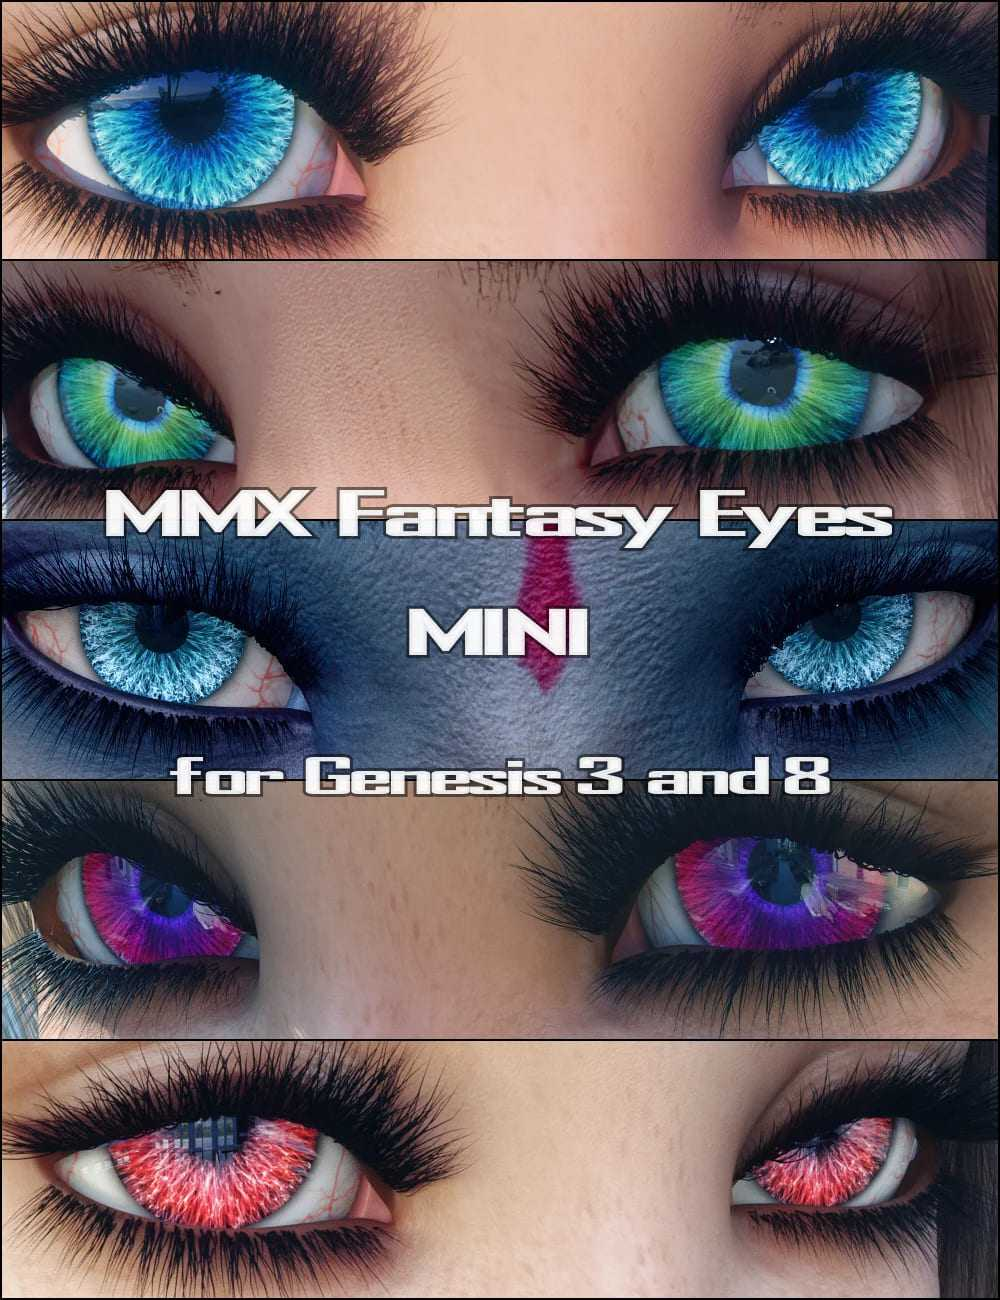 MMX Fantasy Eyes Mini for Genesis 3 and 8